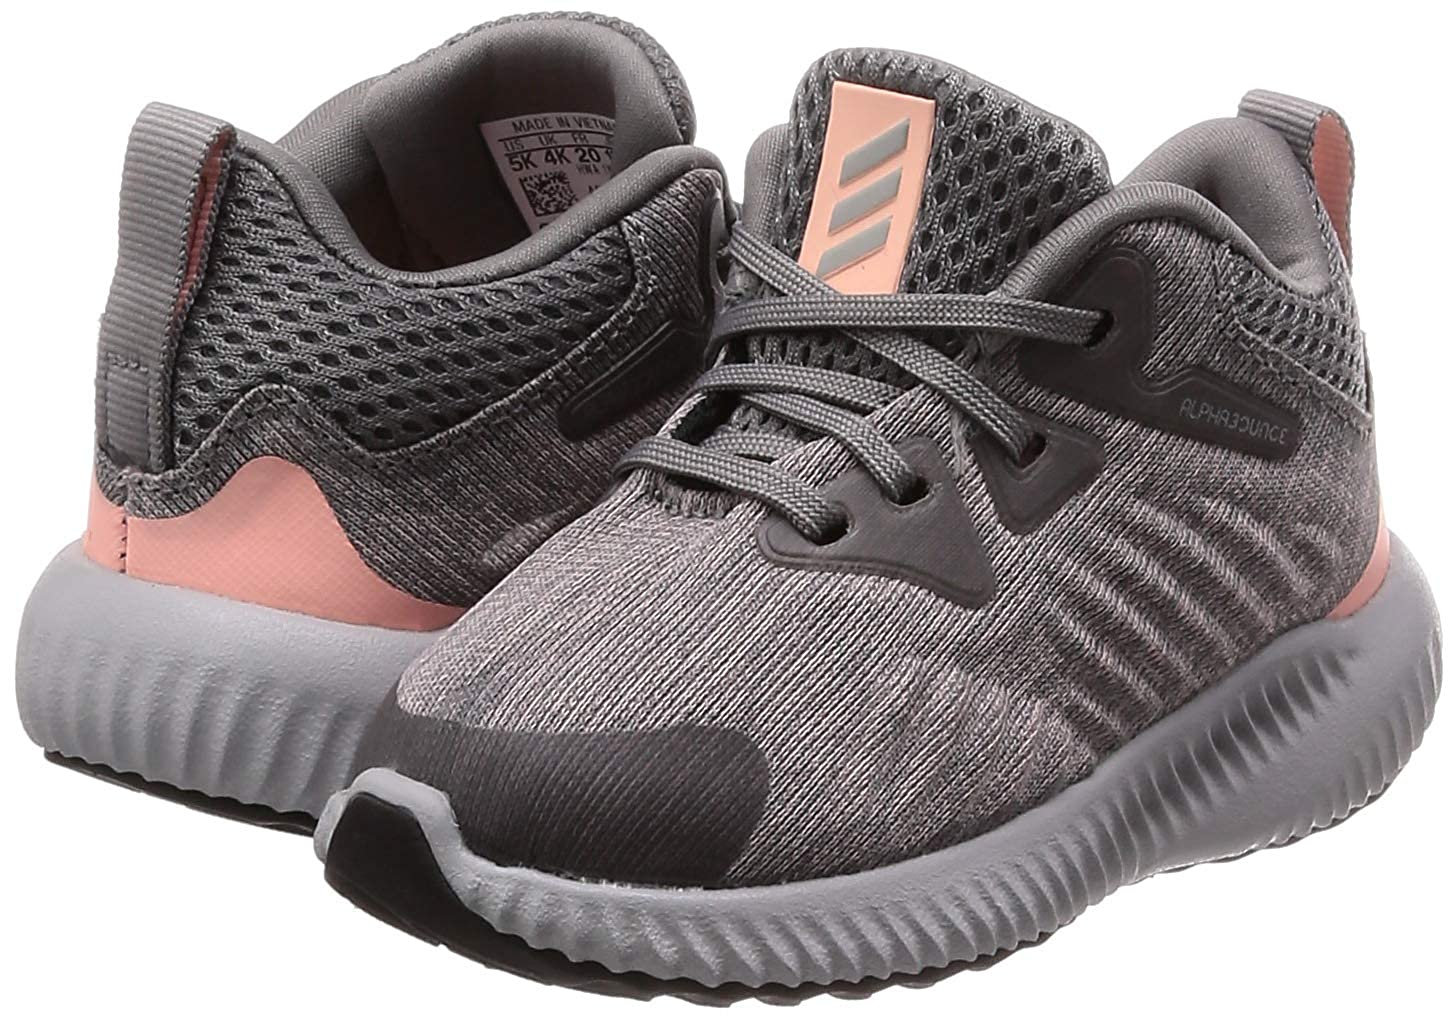 4c00482cf06a5 adidas Babies  Alphabounce Beyond Low-Top Sneakers  Amazon.co.uk  Shoes    Bags